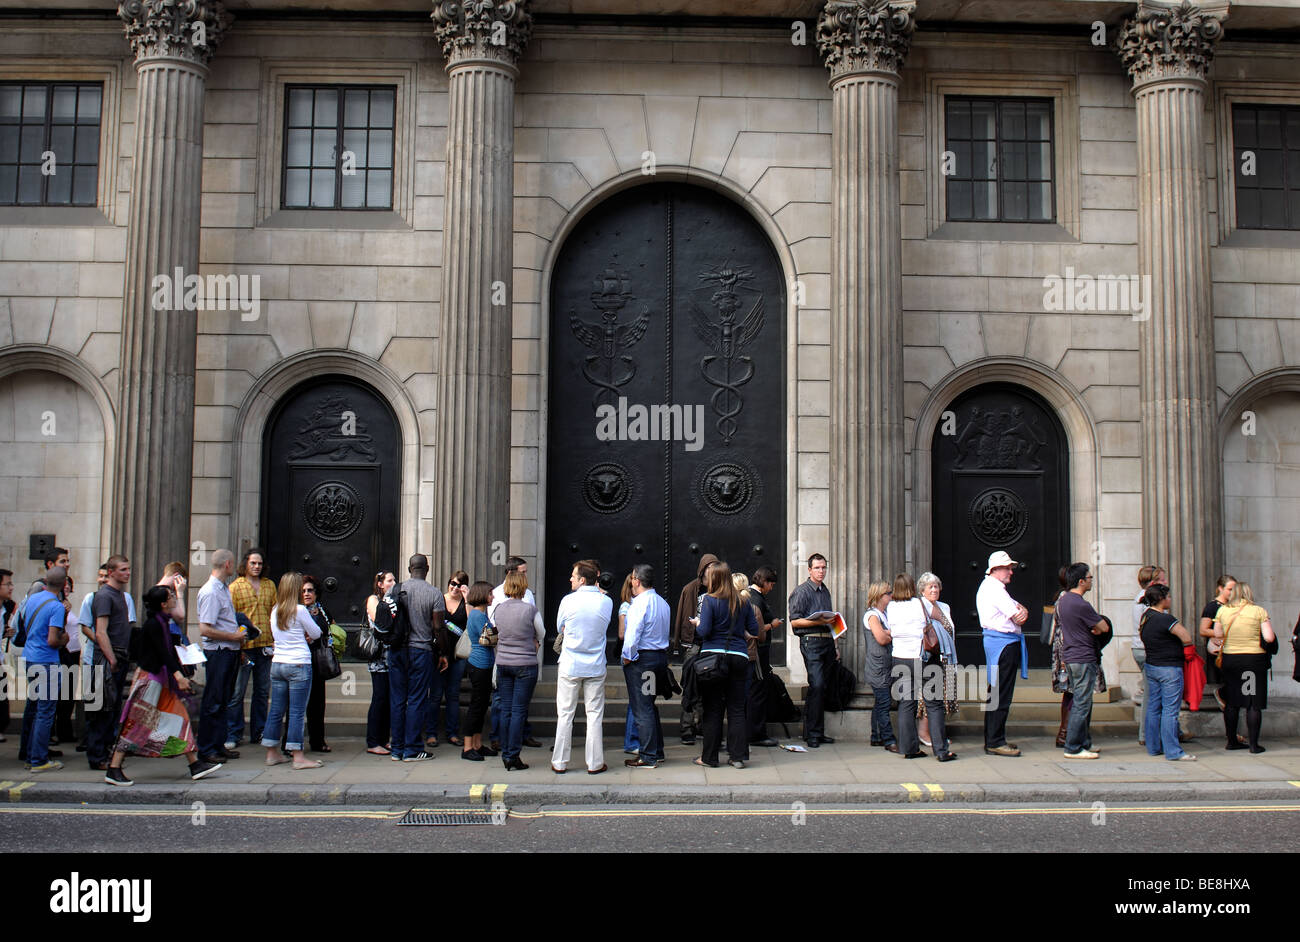 Queue outside Bank of England during Open House weekend, London, England, UK - Stock Image